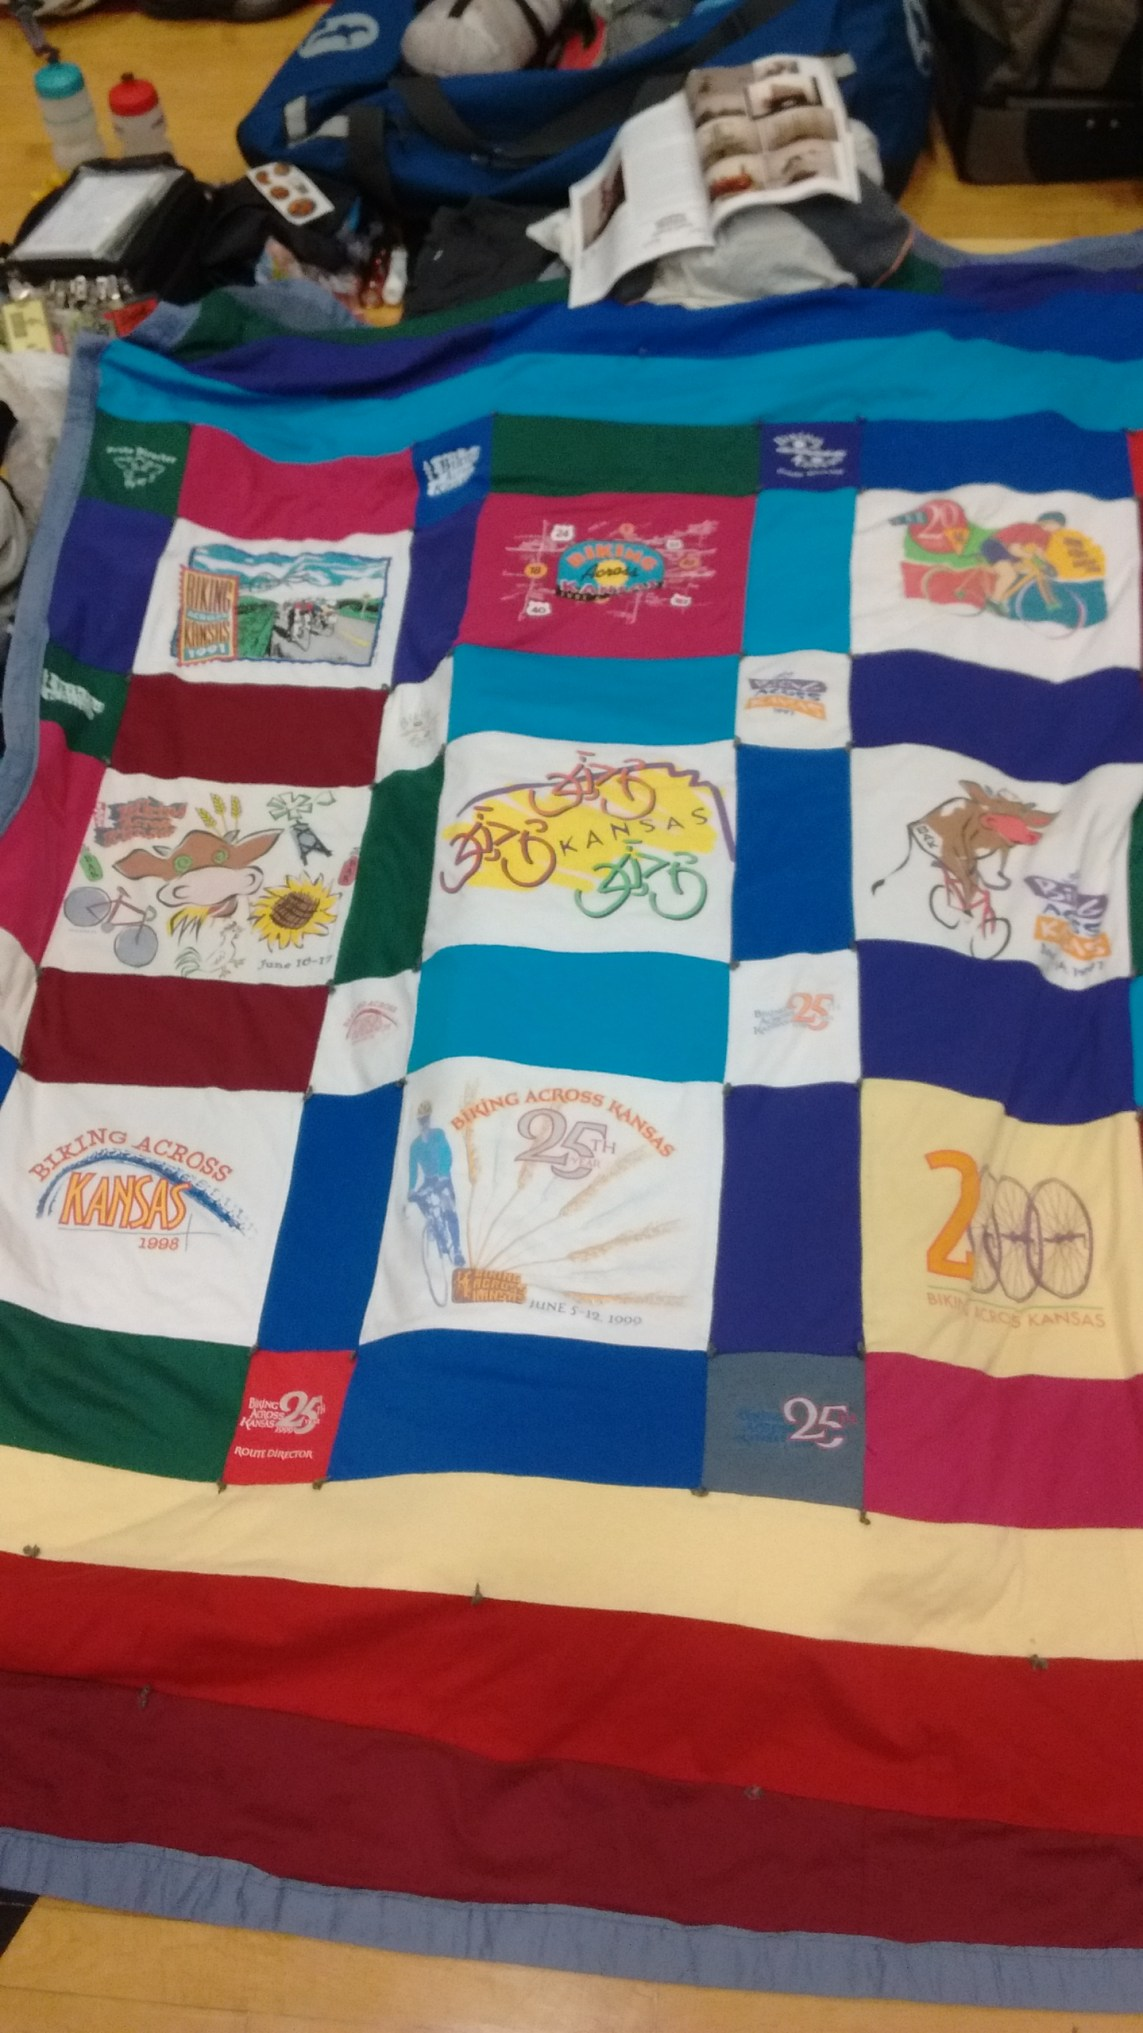 Amy quilt